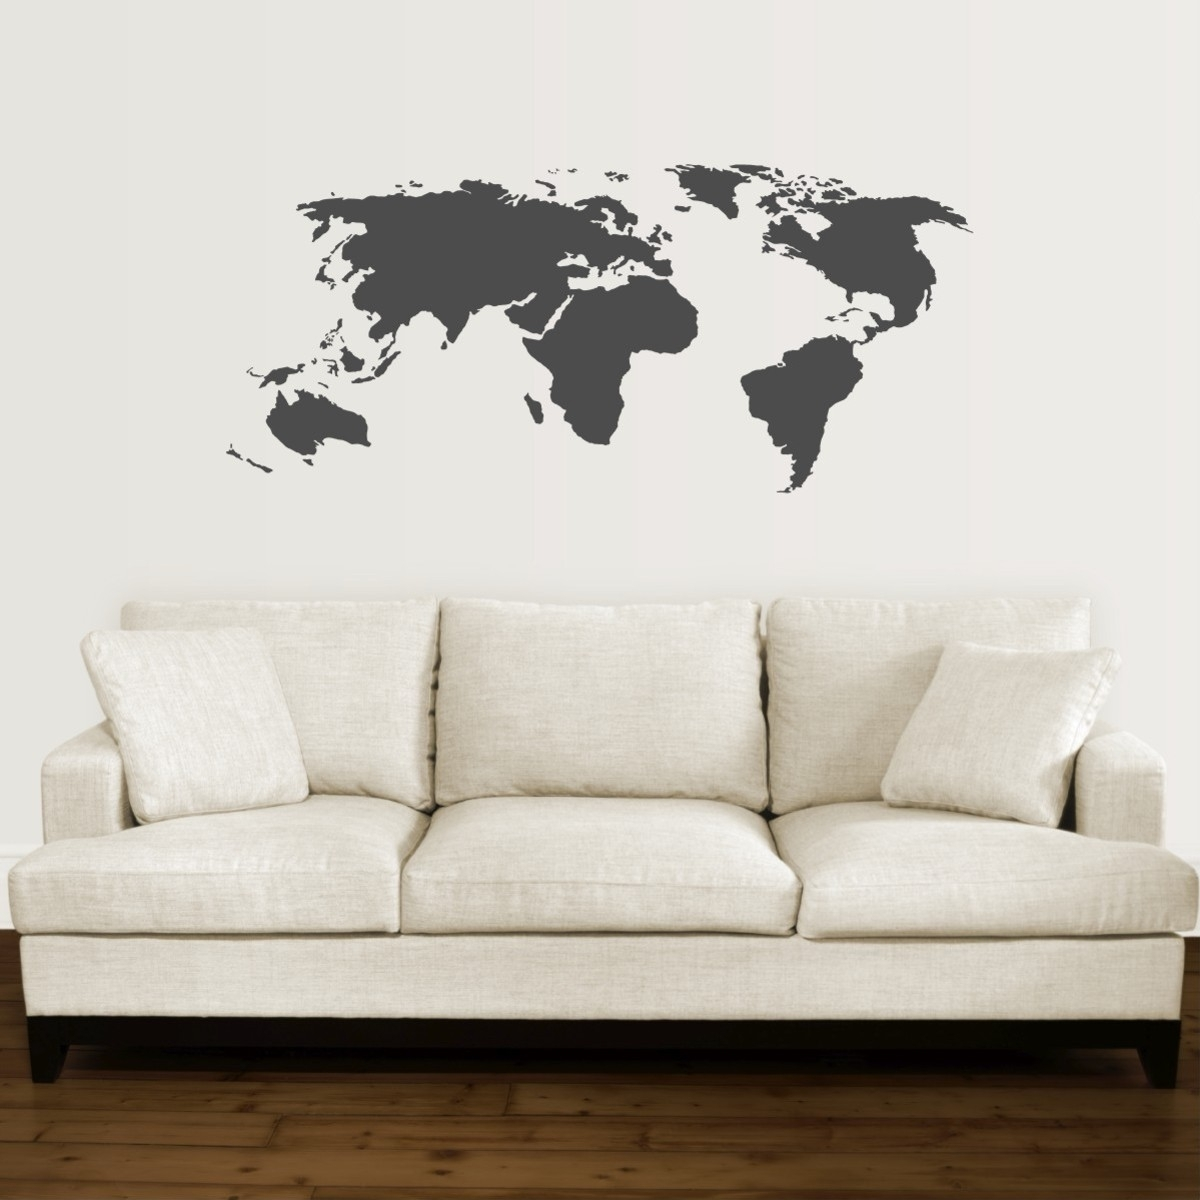 Cool Wall Art For Most Recently Released 17 Cool Ideas For World Map Wall Art – Live Diy Ideas (View 5 of 15)